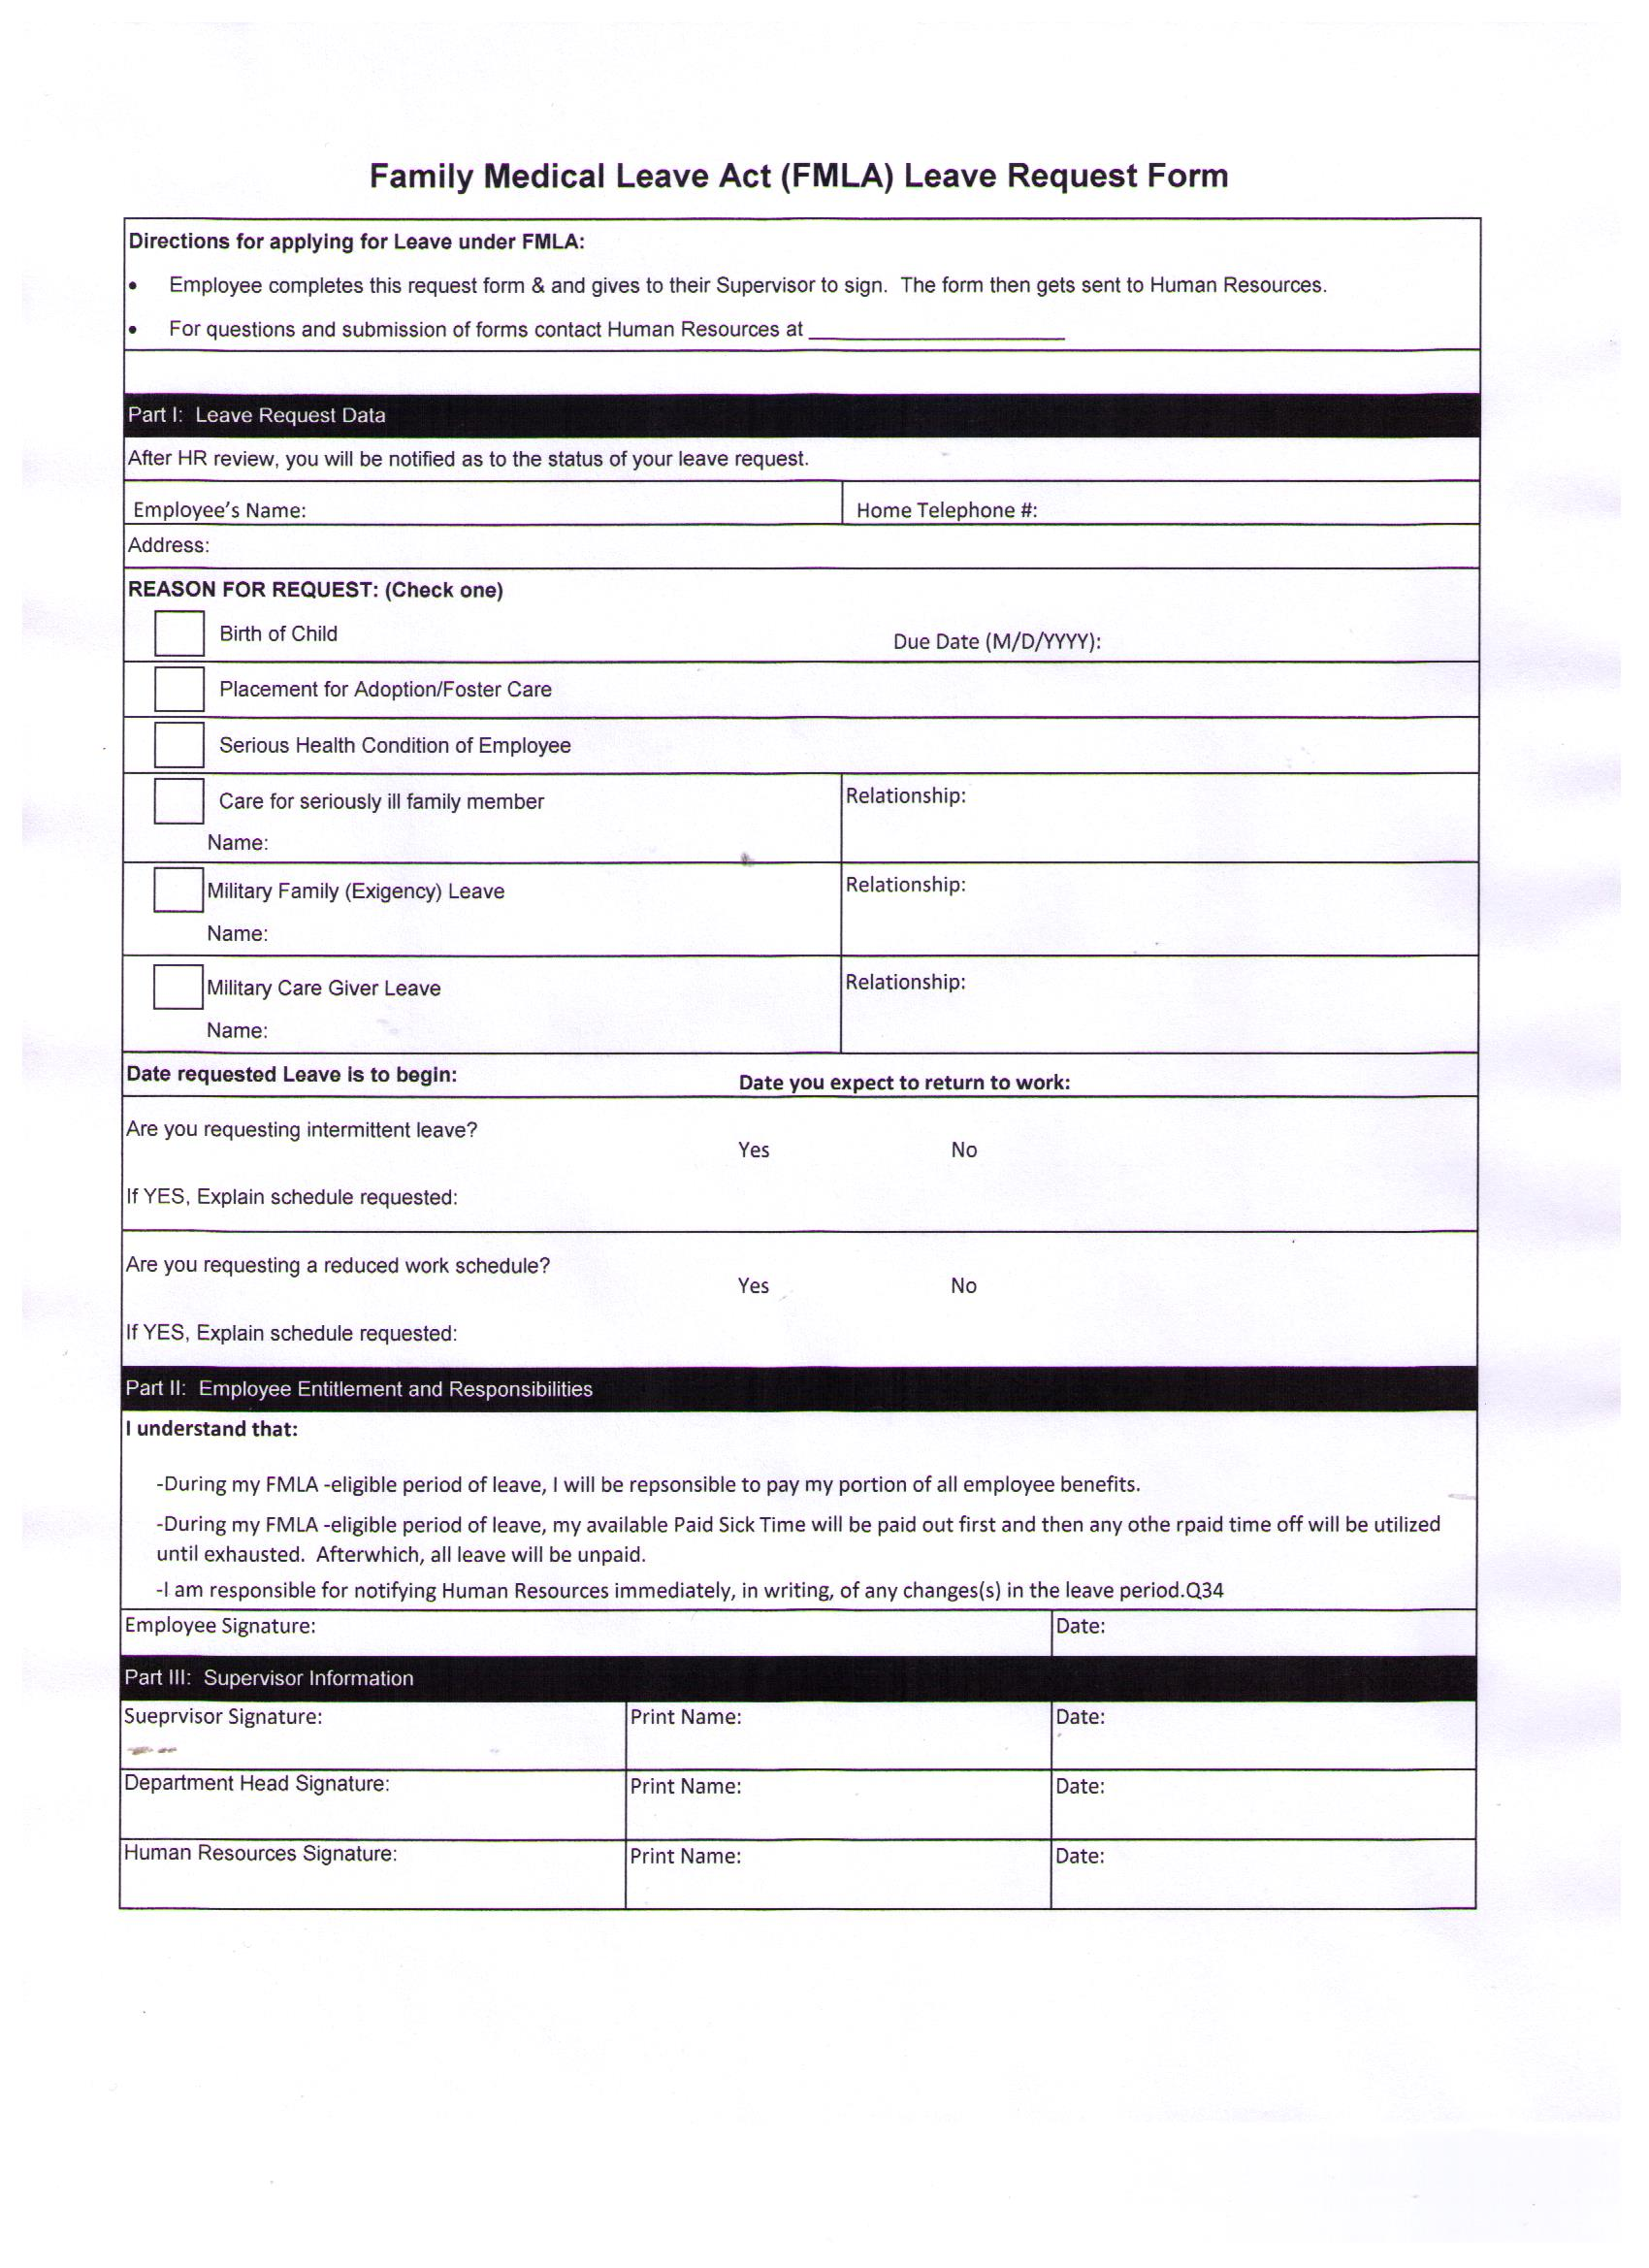 Human resources toolkit forms american ambulance for Human resource forms and templates